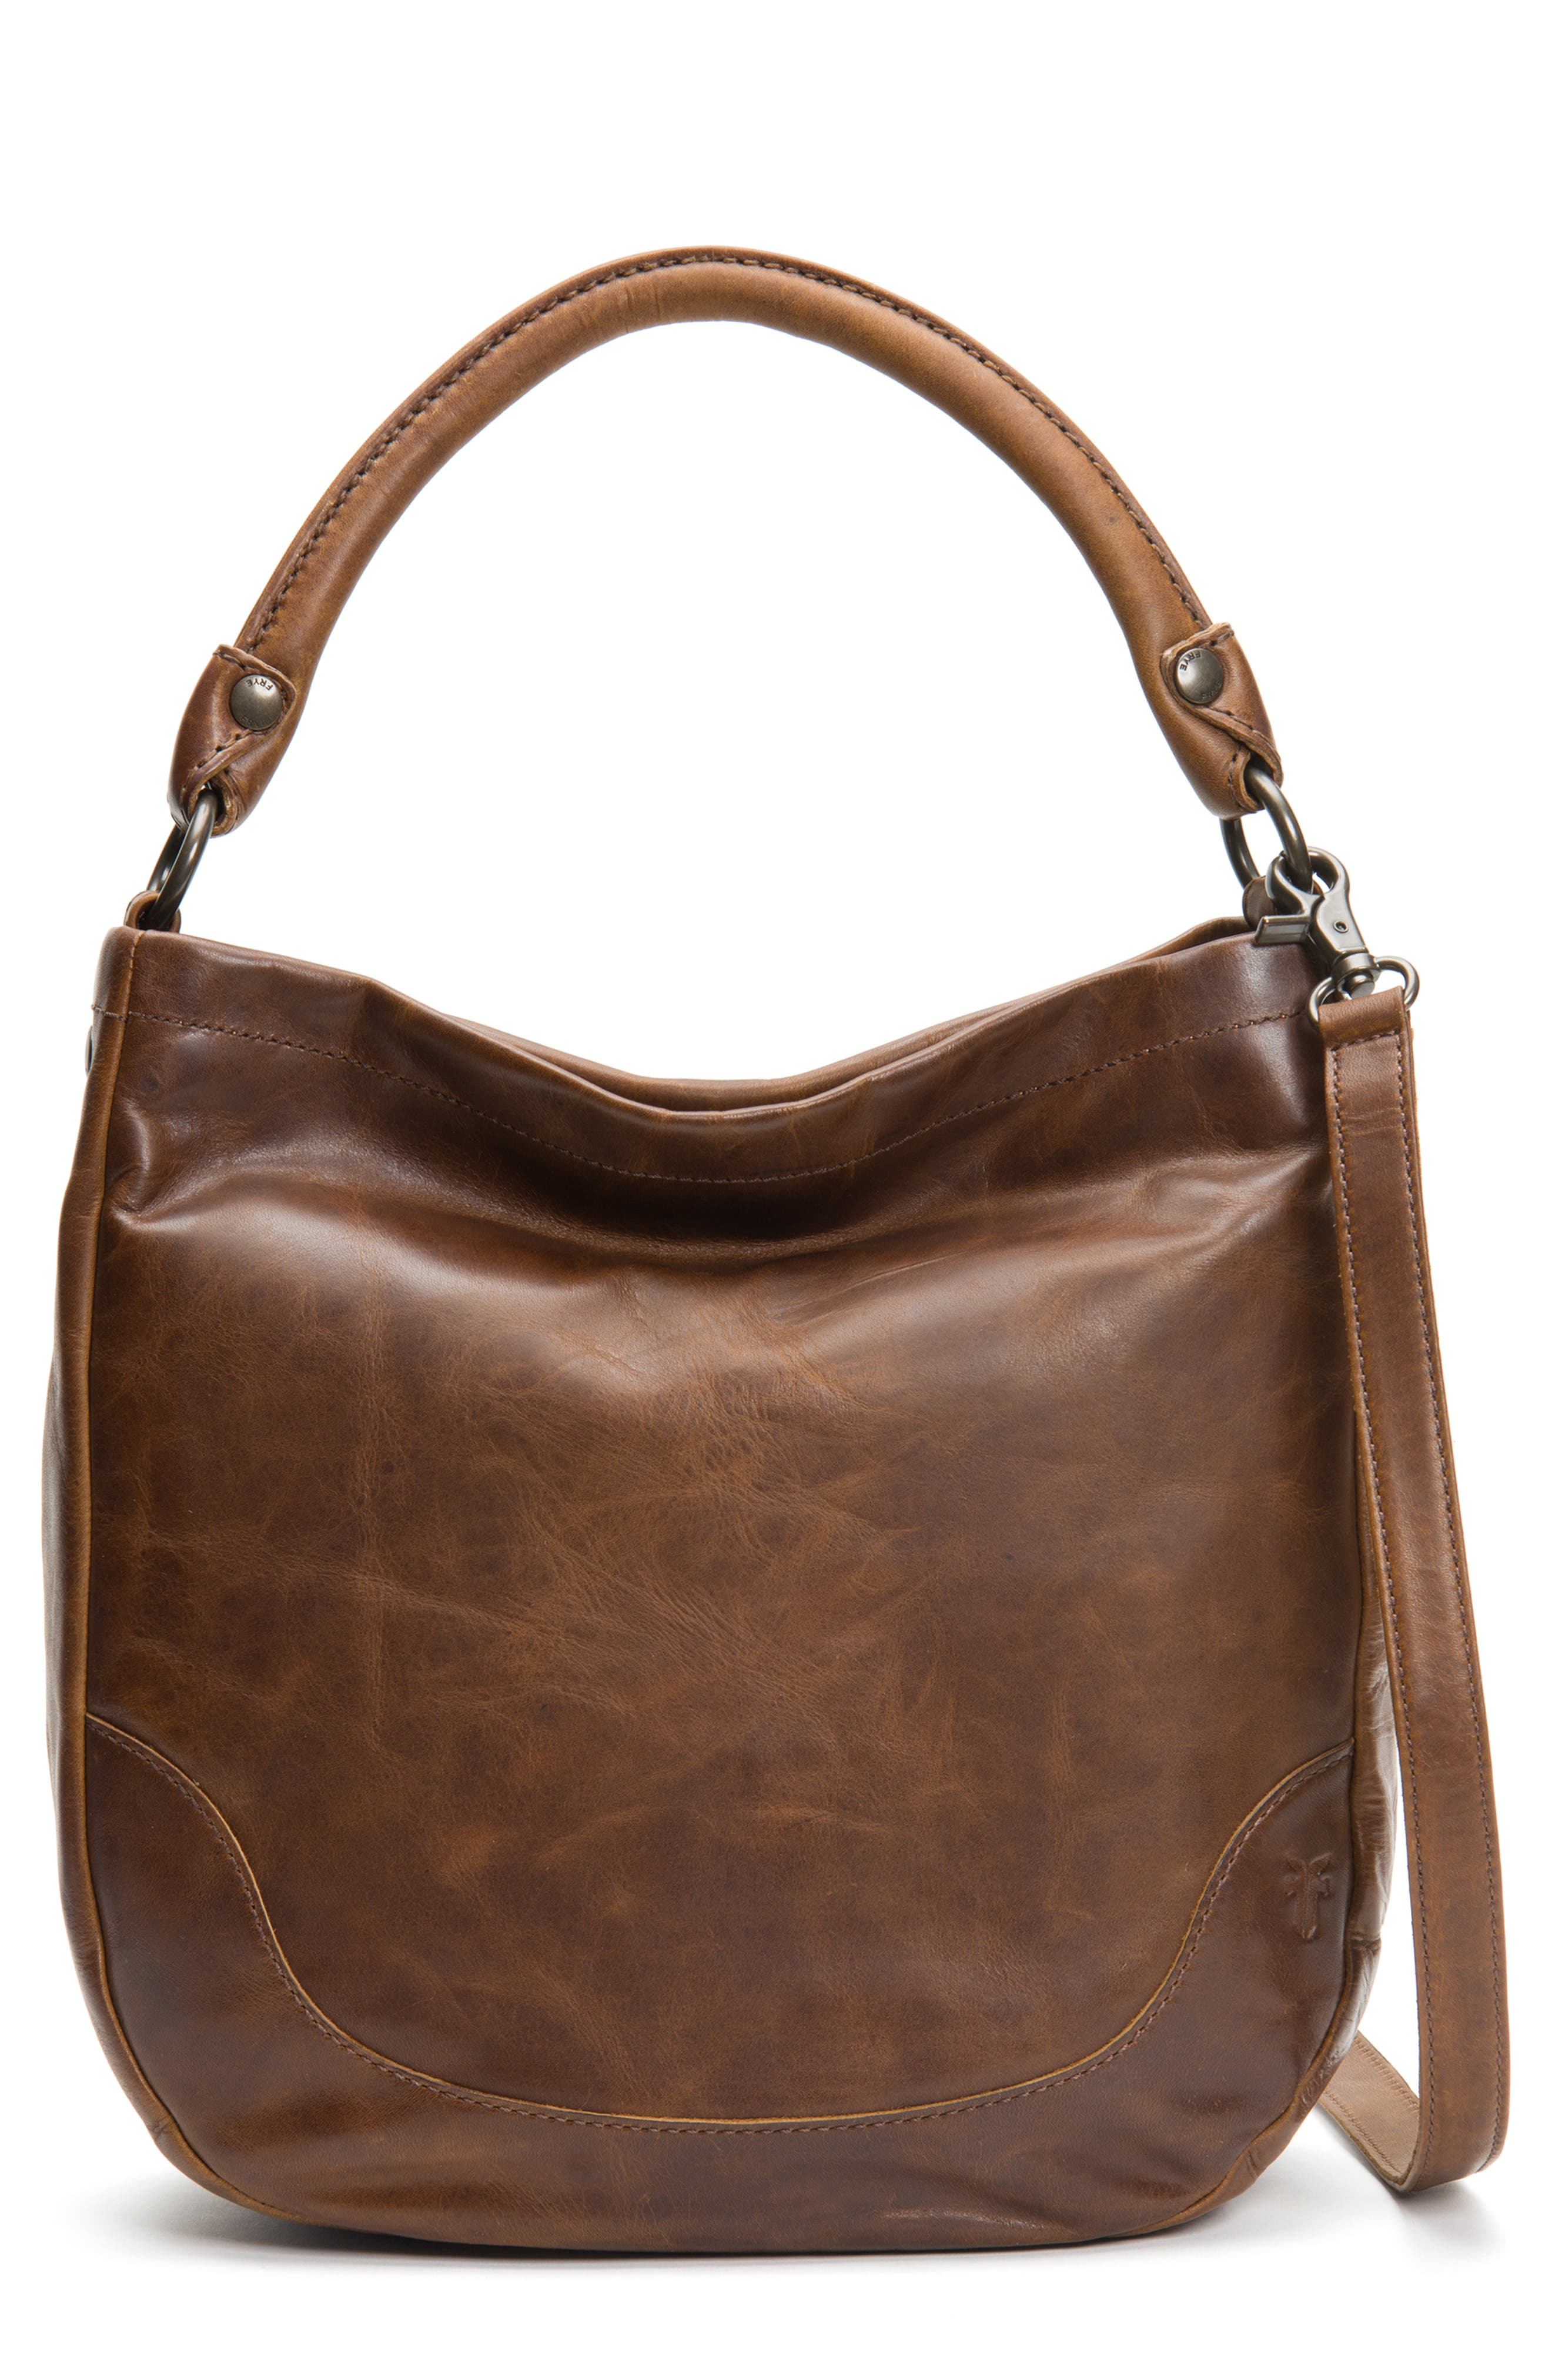 FRYE, Melissa Leather Hobo, Alternate thumbnail 2, color, DARK BROWN